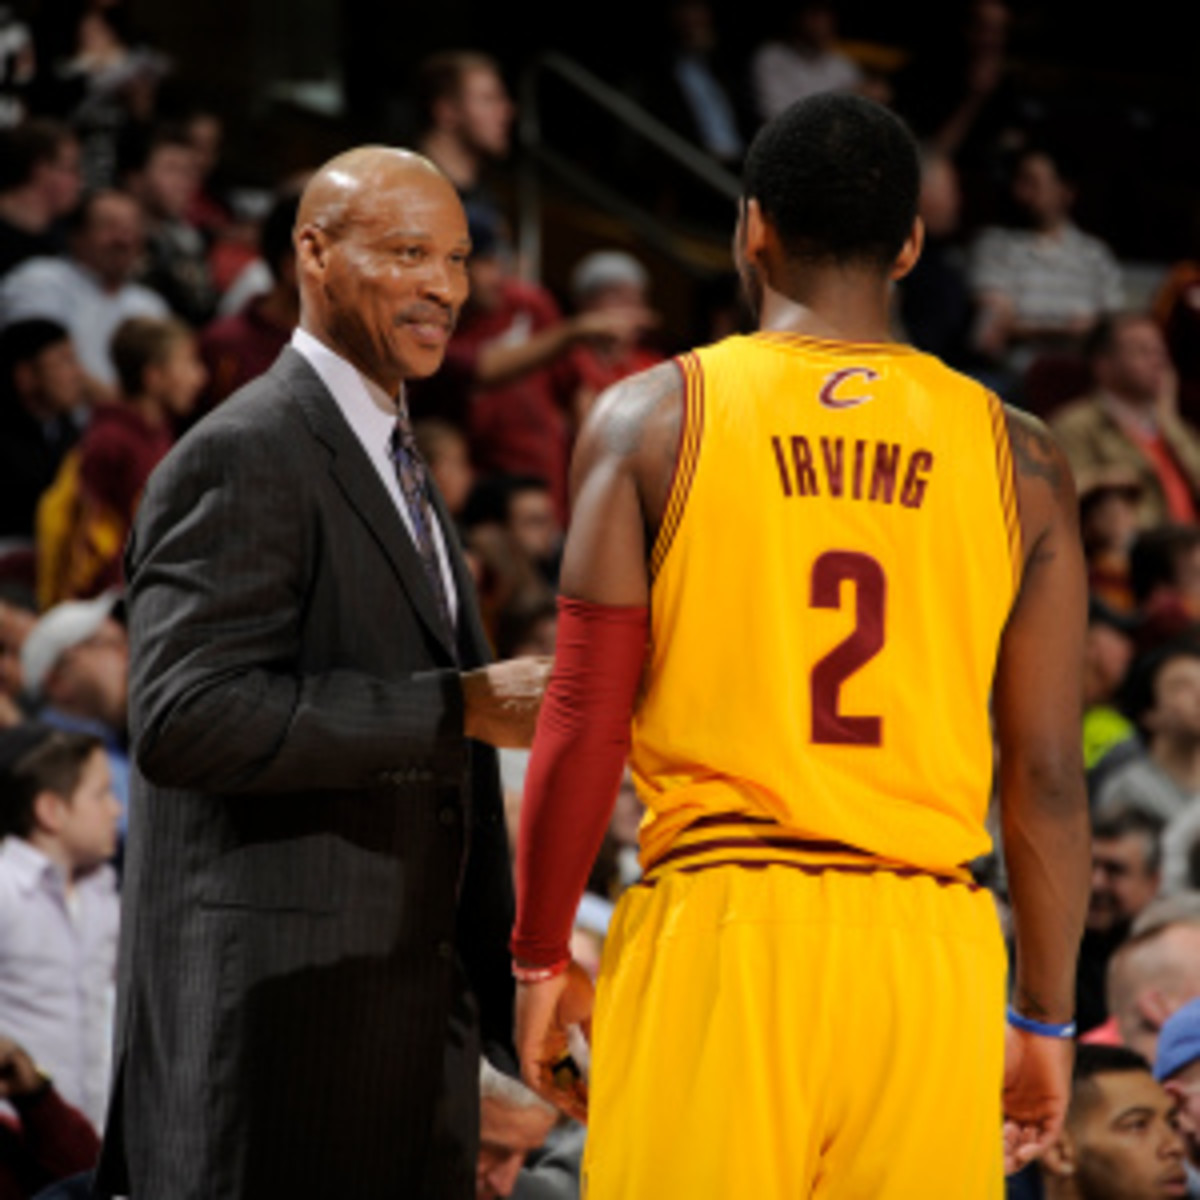 Byron Scott was fired Thursday as coach of the Cavaliers. (David Liam Kyle/Getty Images)